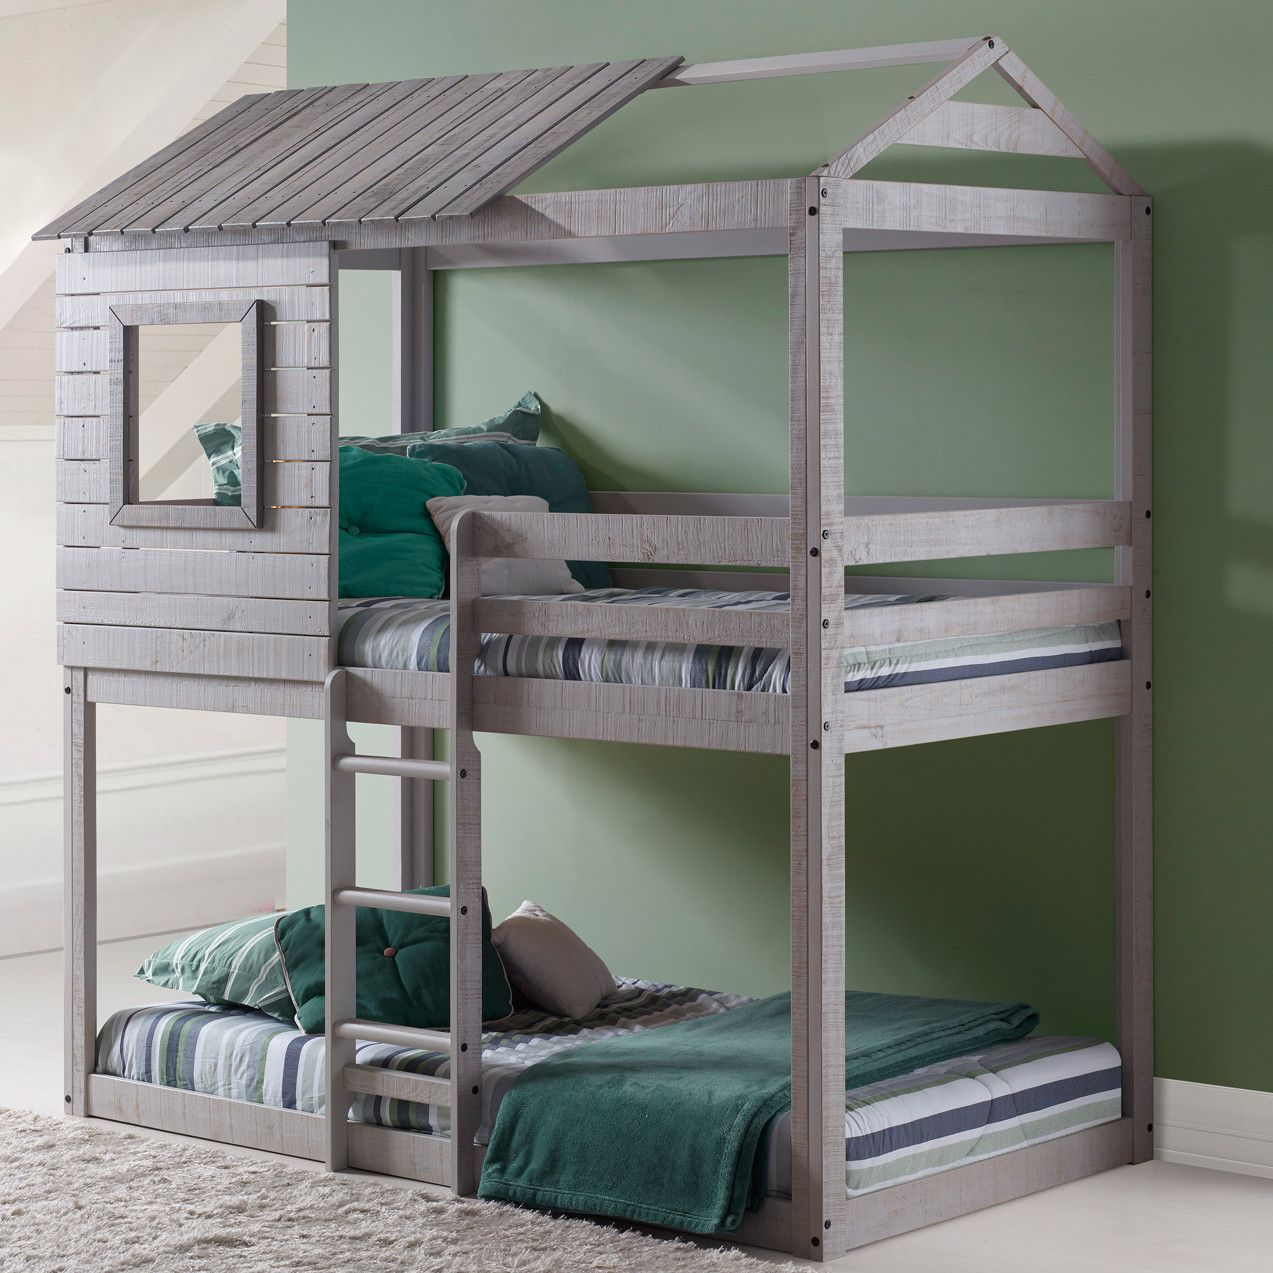 Boys' twin loft bed with storage steps  Donco Kids Twin Bunk Bed  Ideas for the House  Pinterest  Bunk